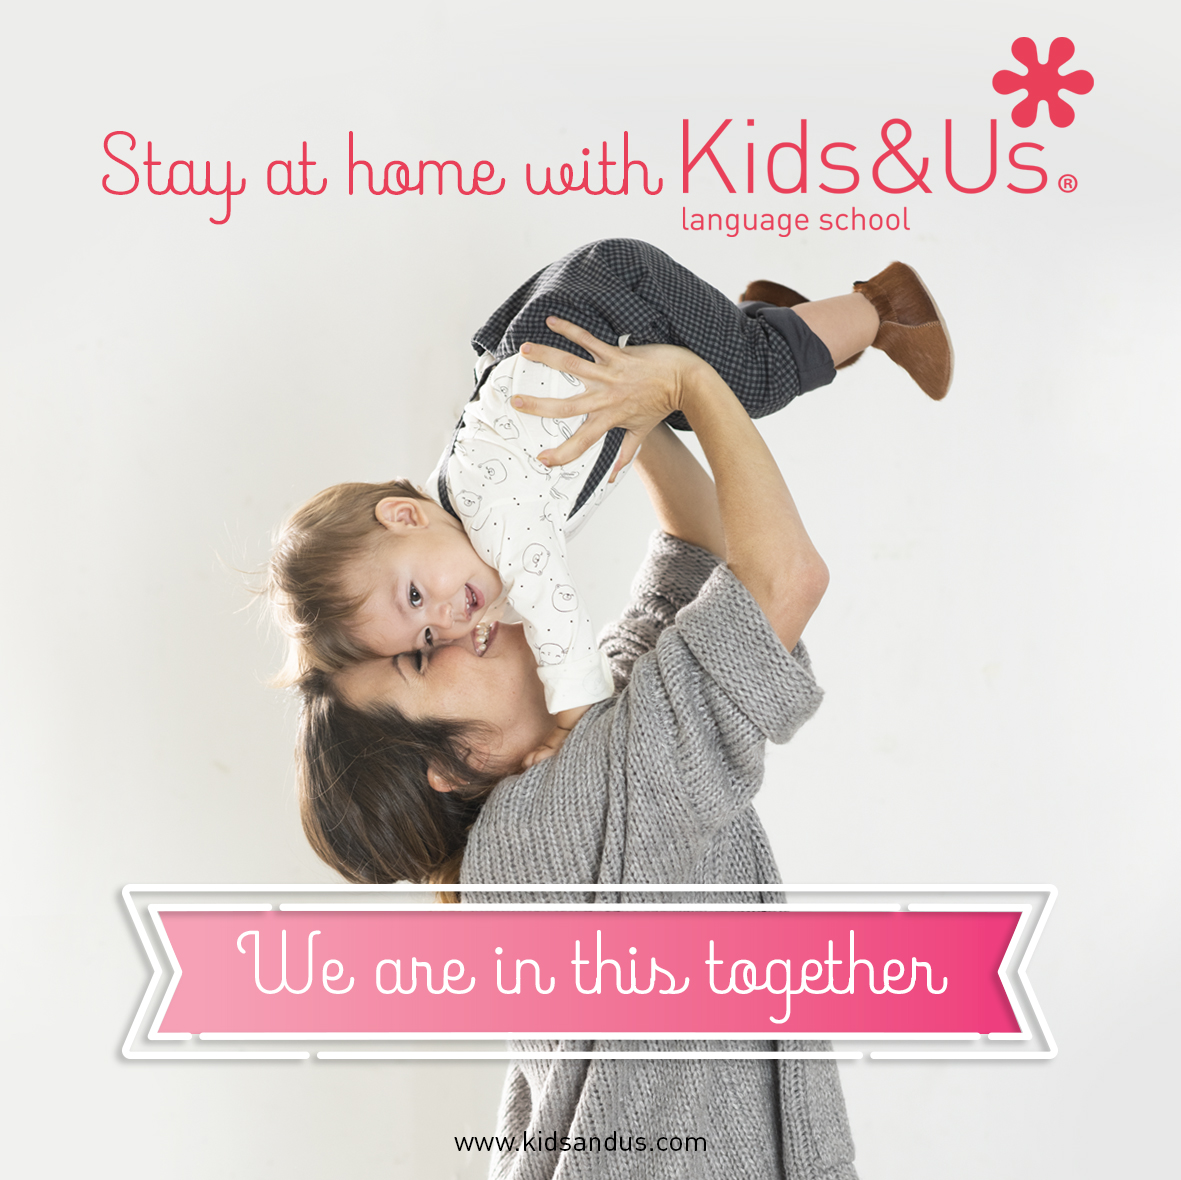 Stay at home with Kids&Us